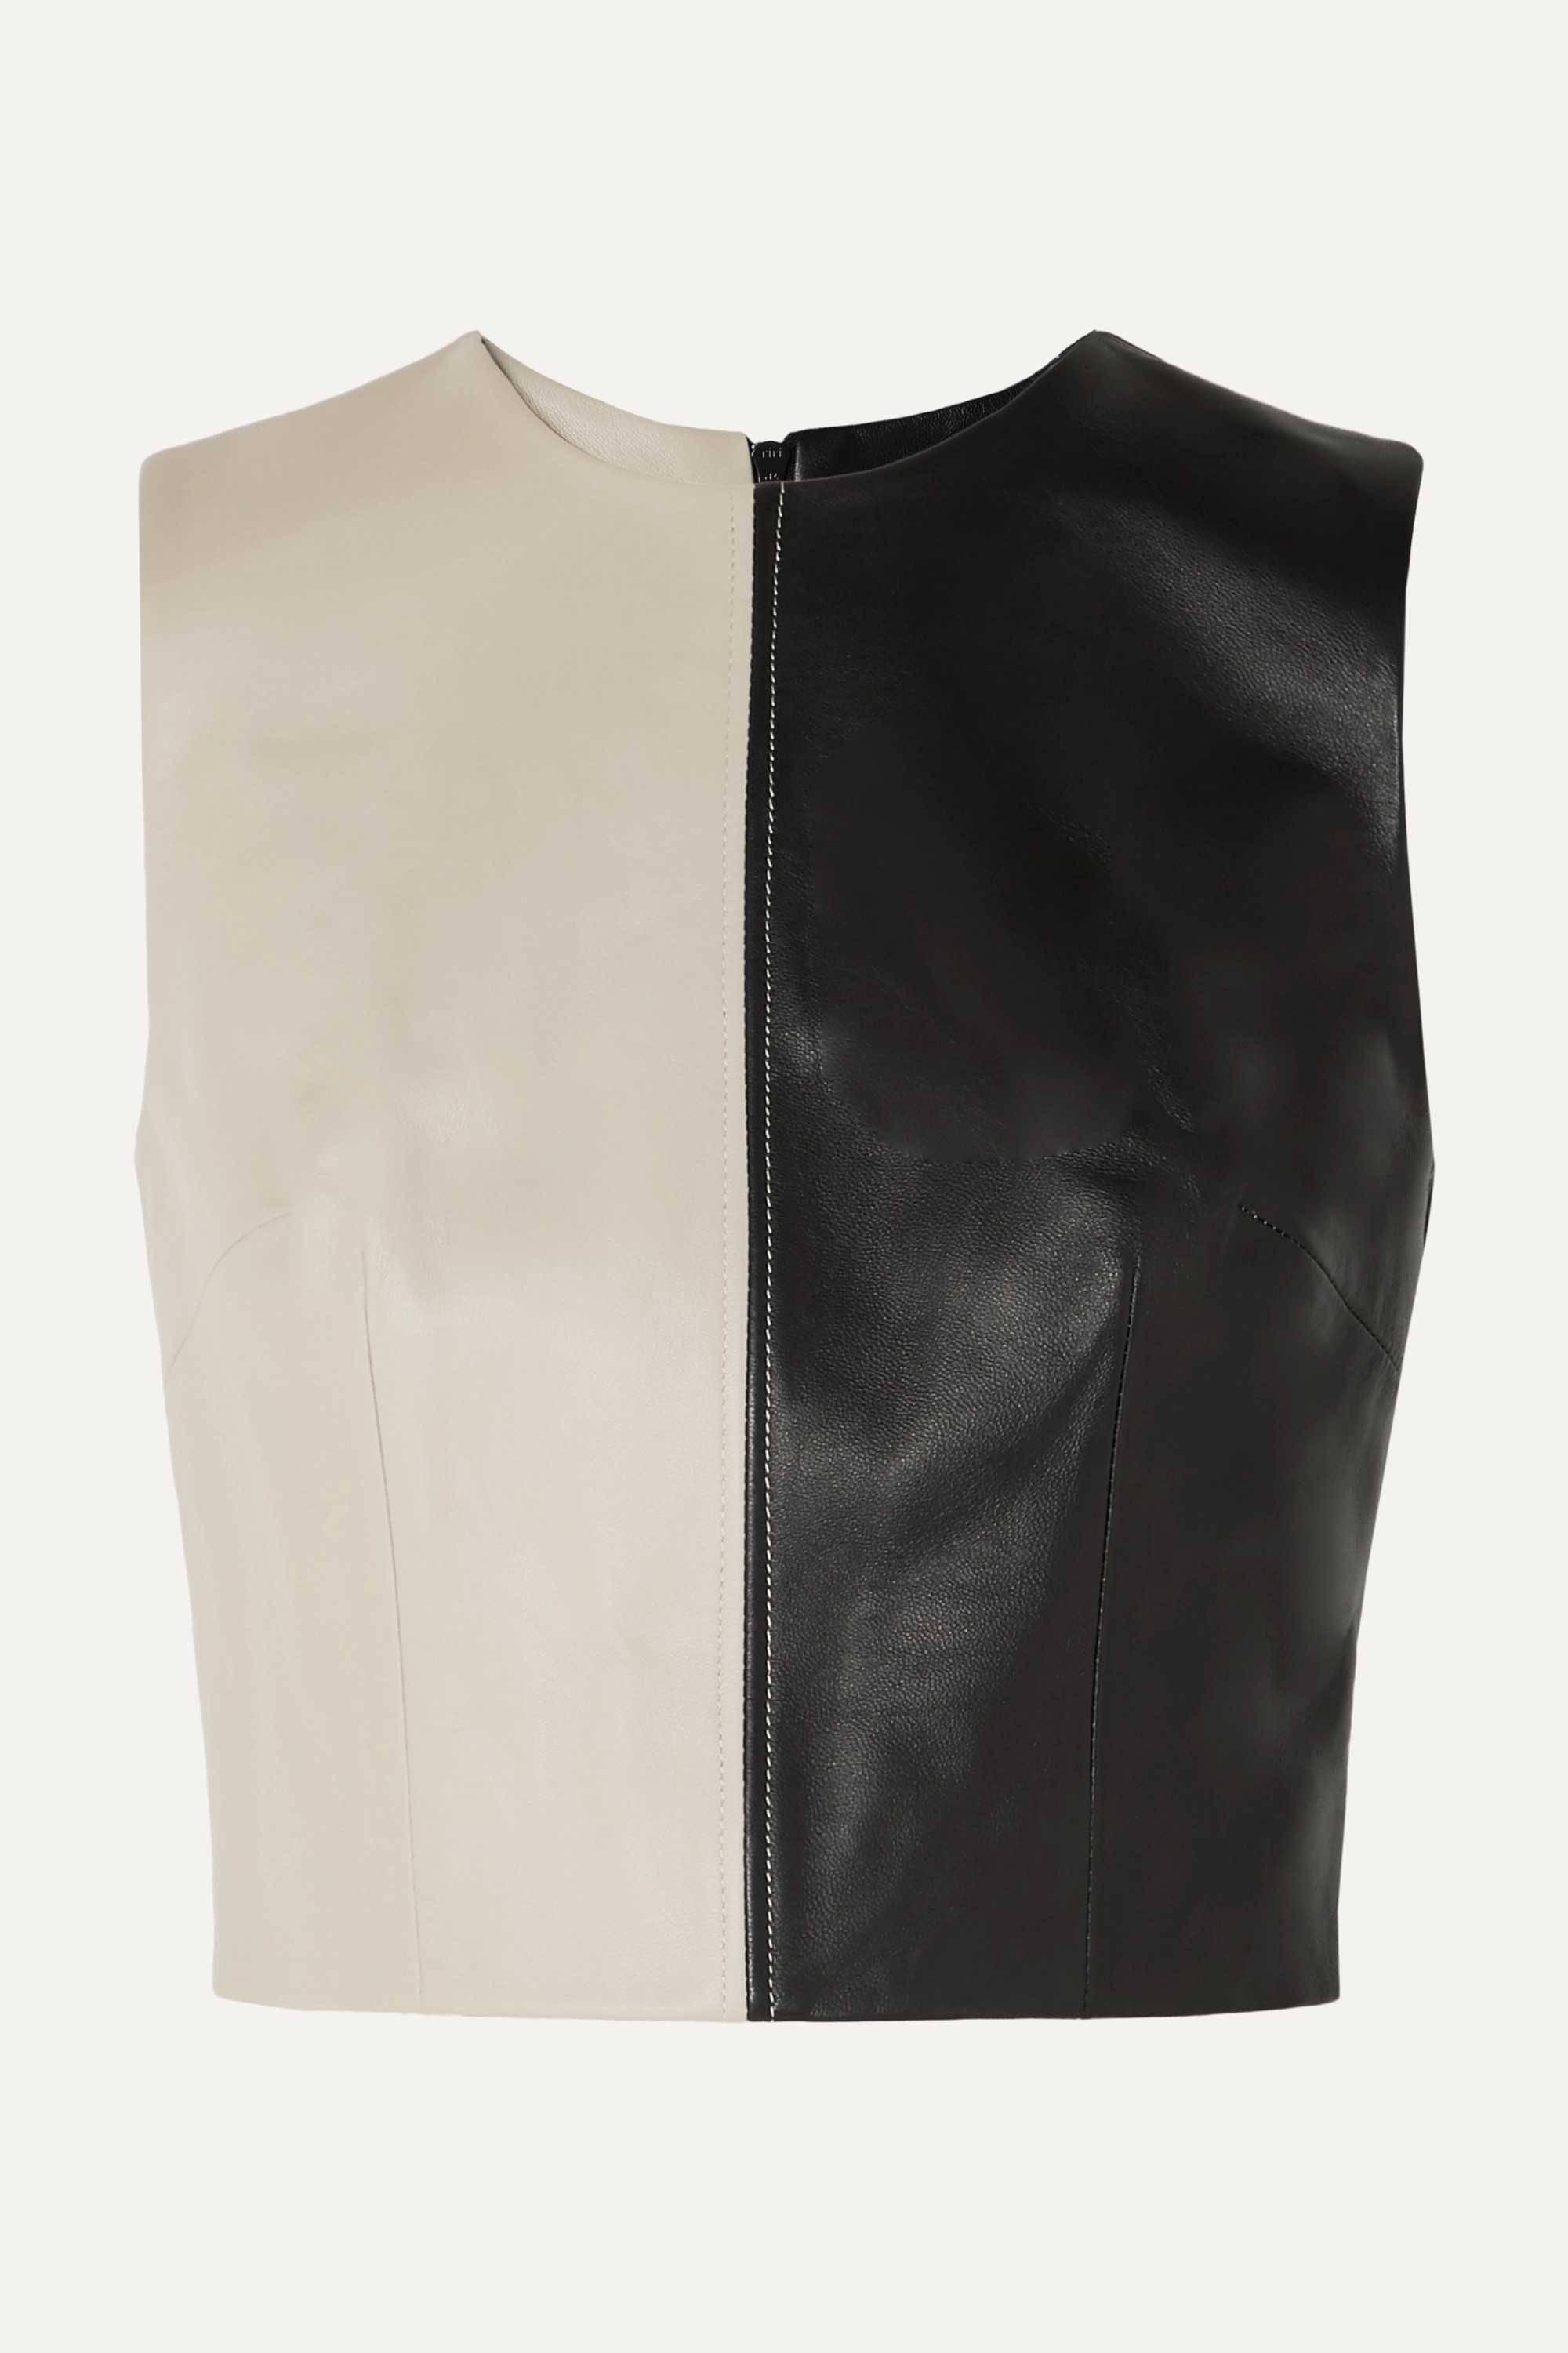 16ARLINGTON Dickinson cropped two-tone leather top